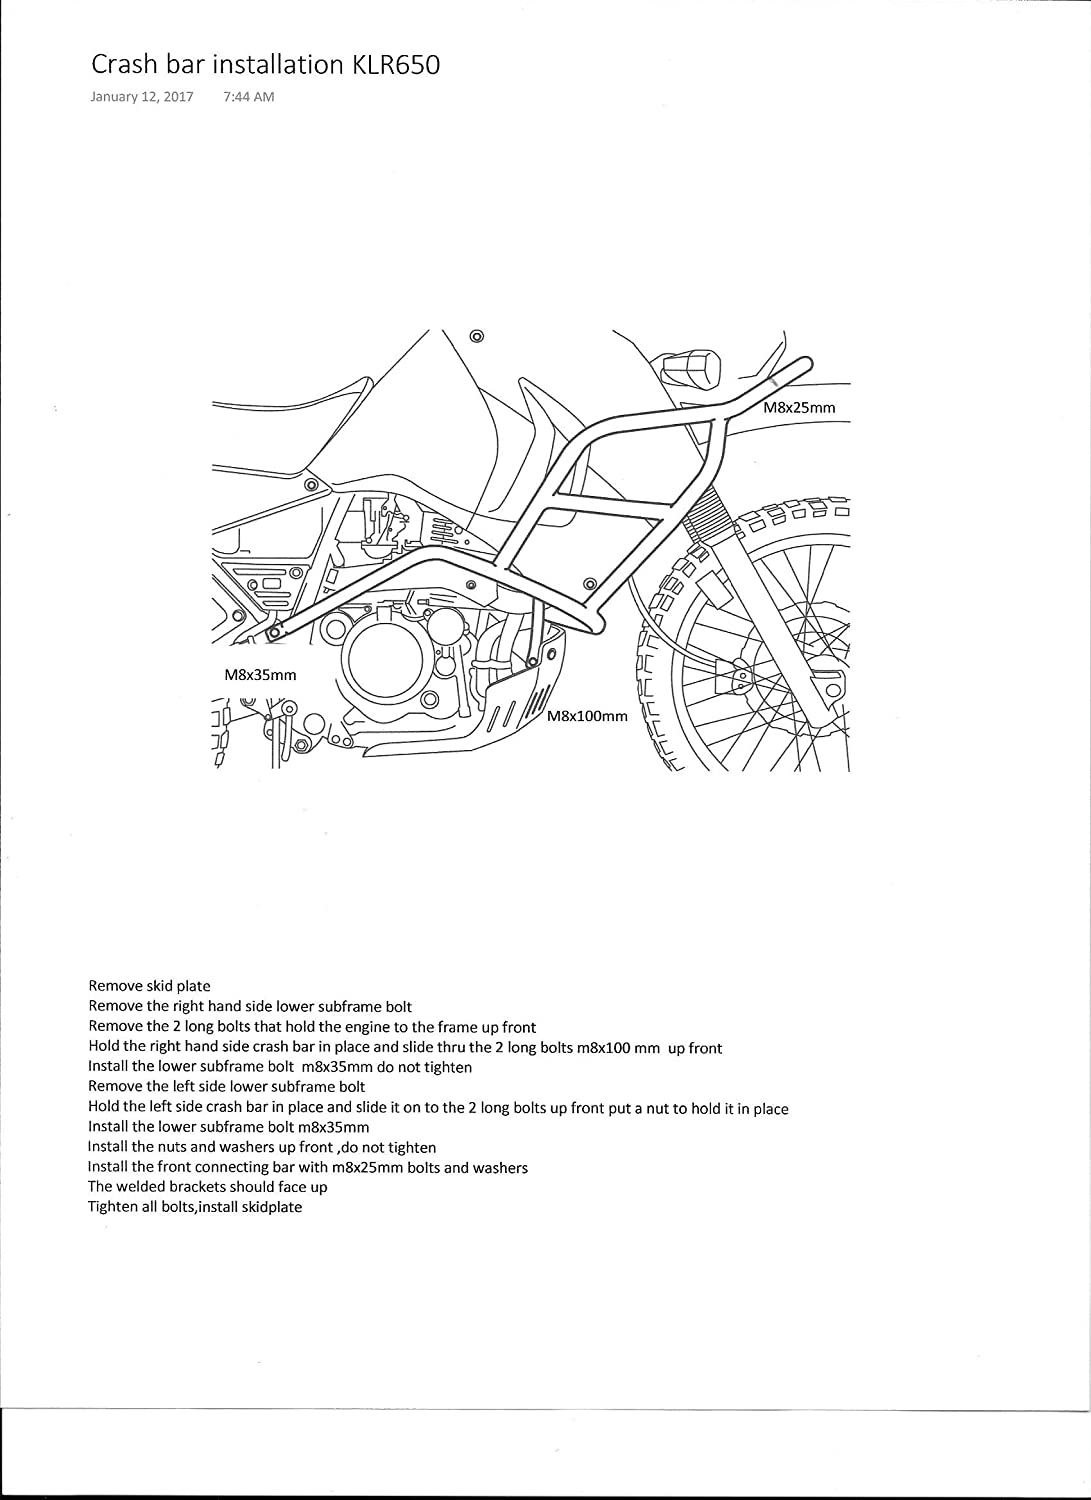 99 Plymouth Breeze Engine Diagram Klr 650 Wiring Kawasaki Klr650 Color Library Circuit Symbols U2022 19 Hp